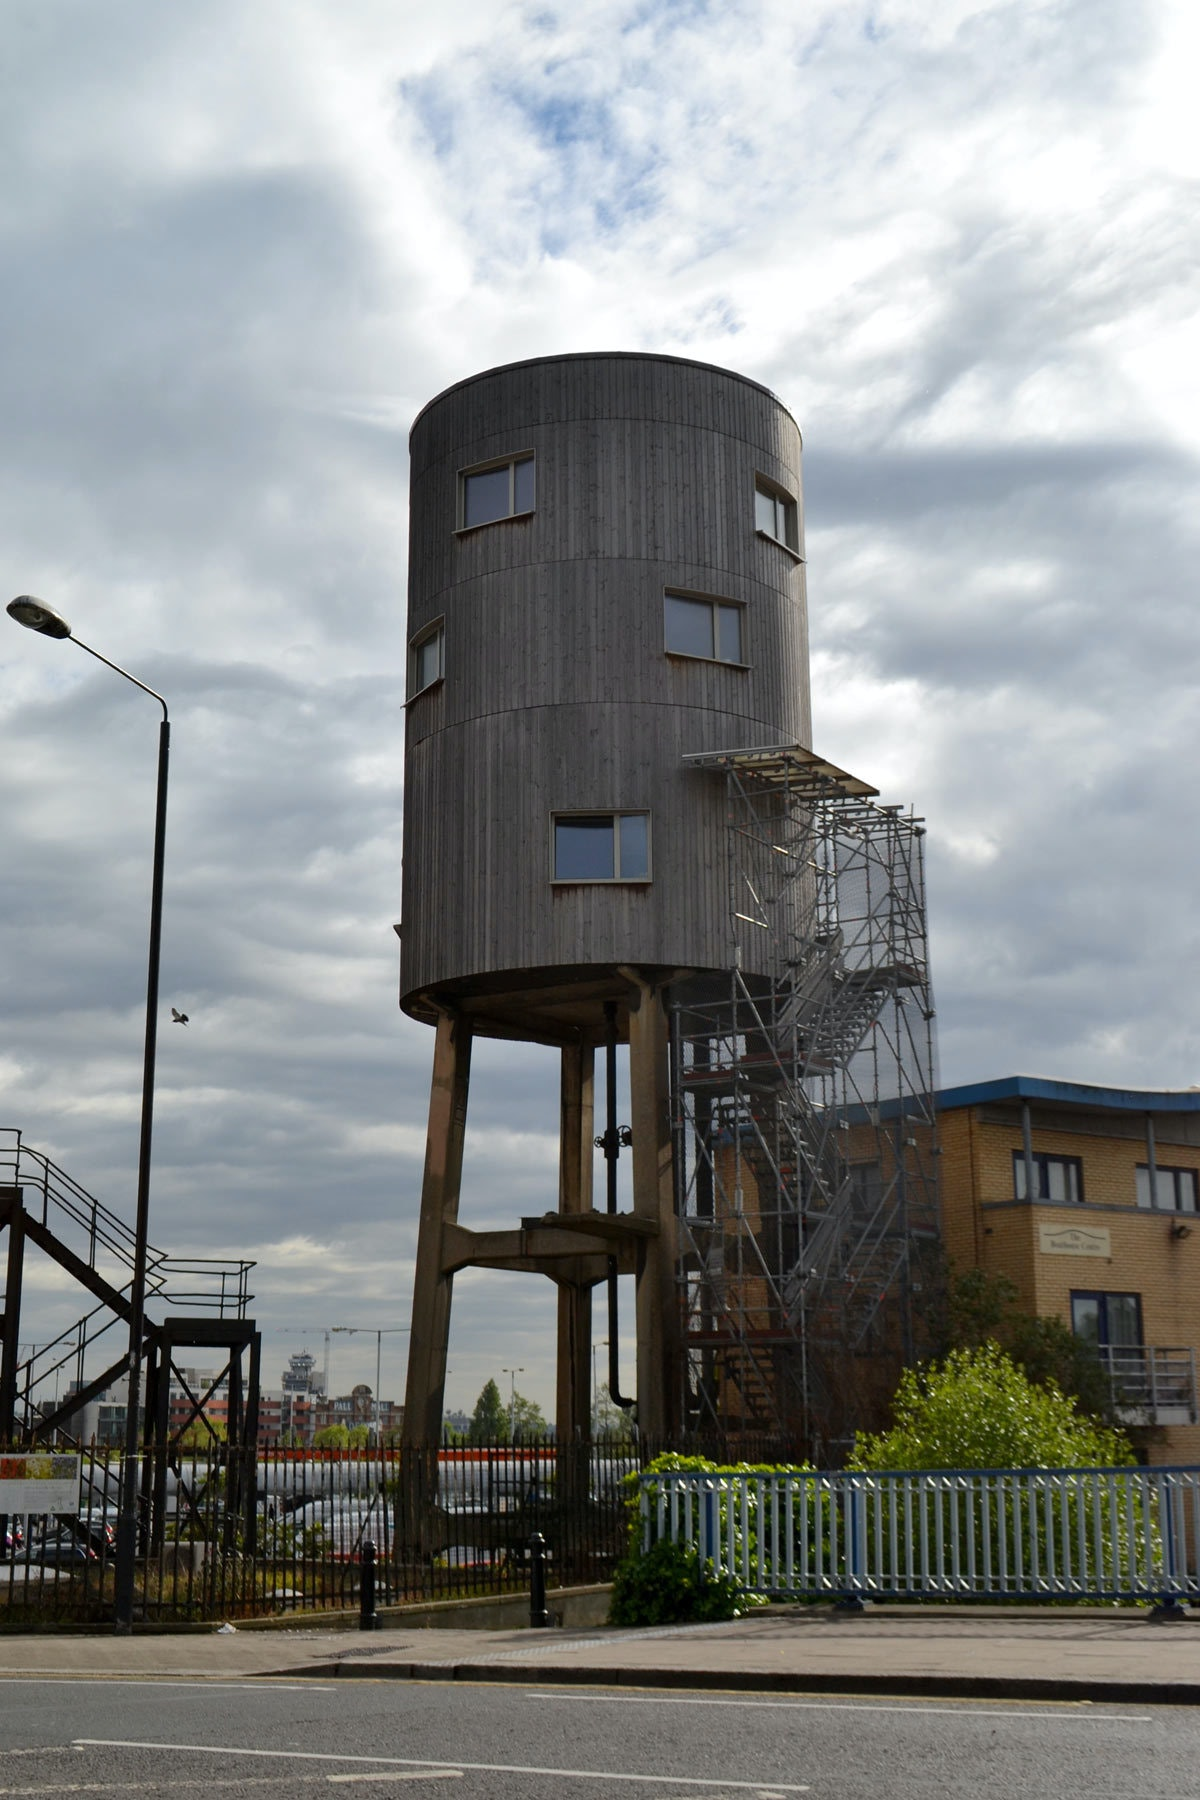 Tom Dixon's Water Tower